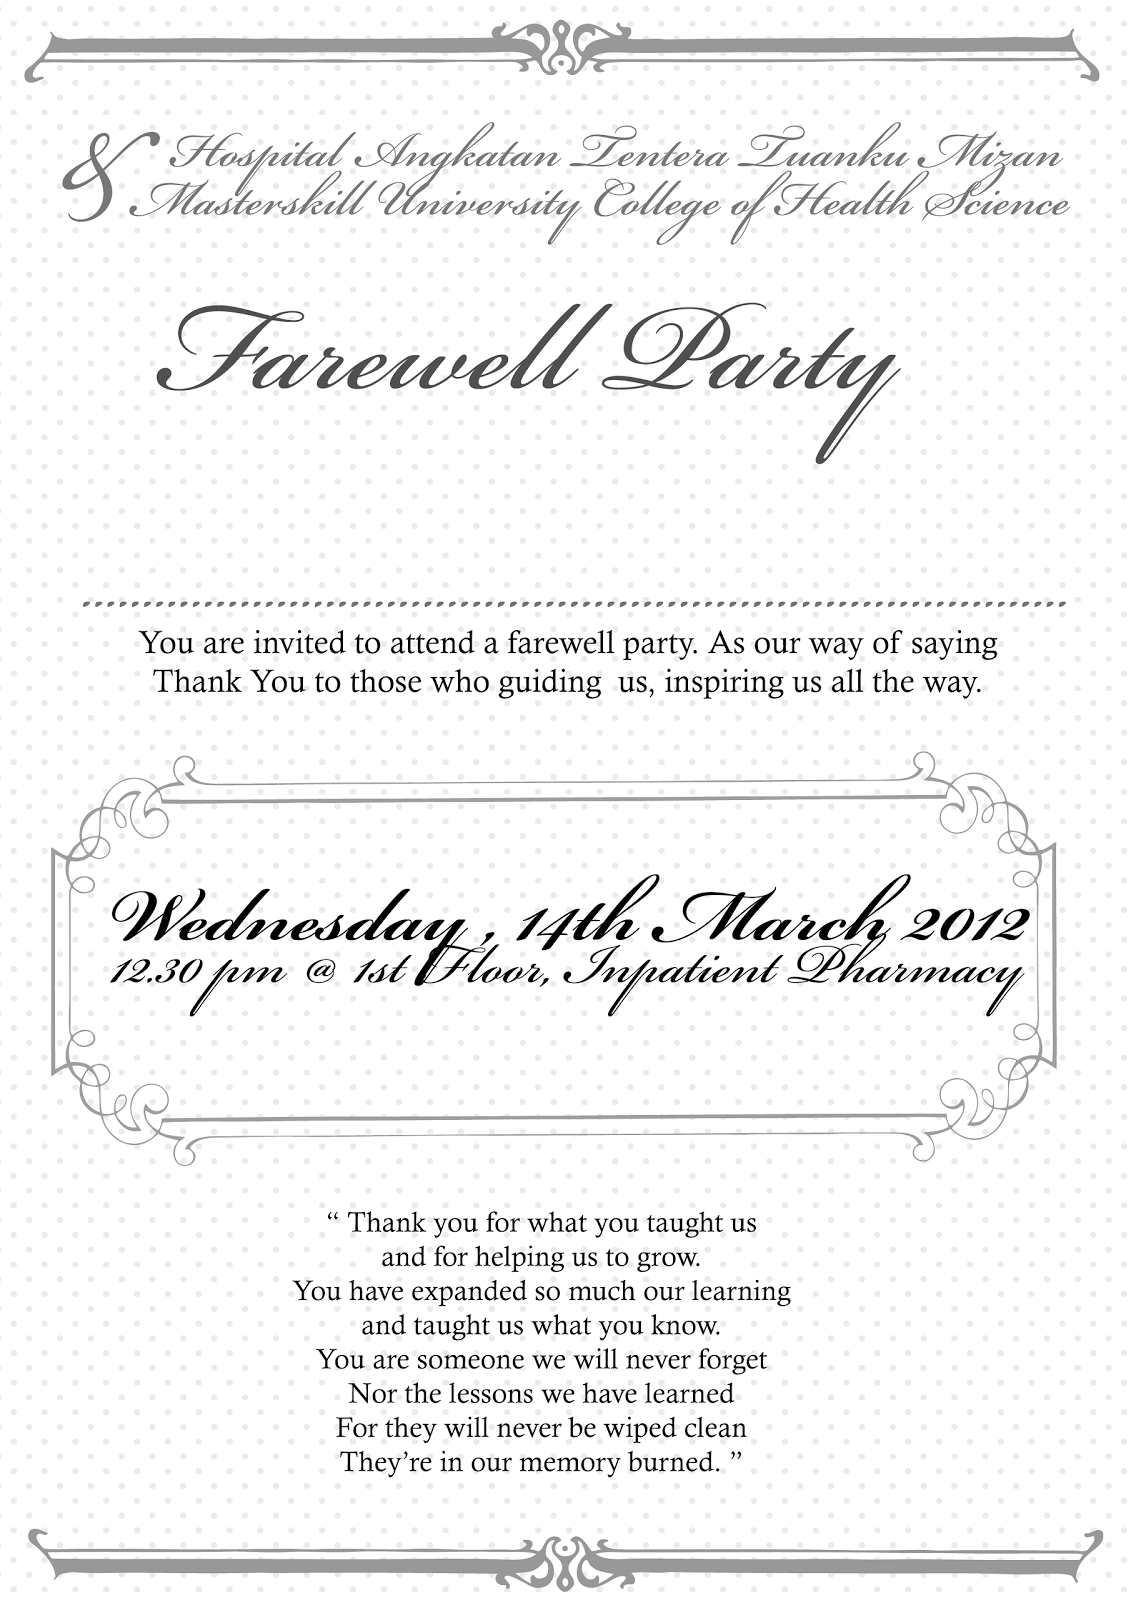 Invitation Card - Farewell Party